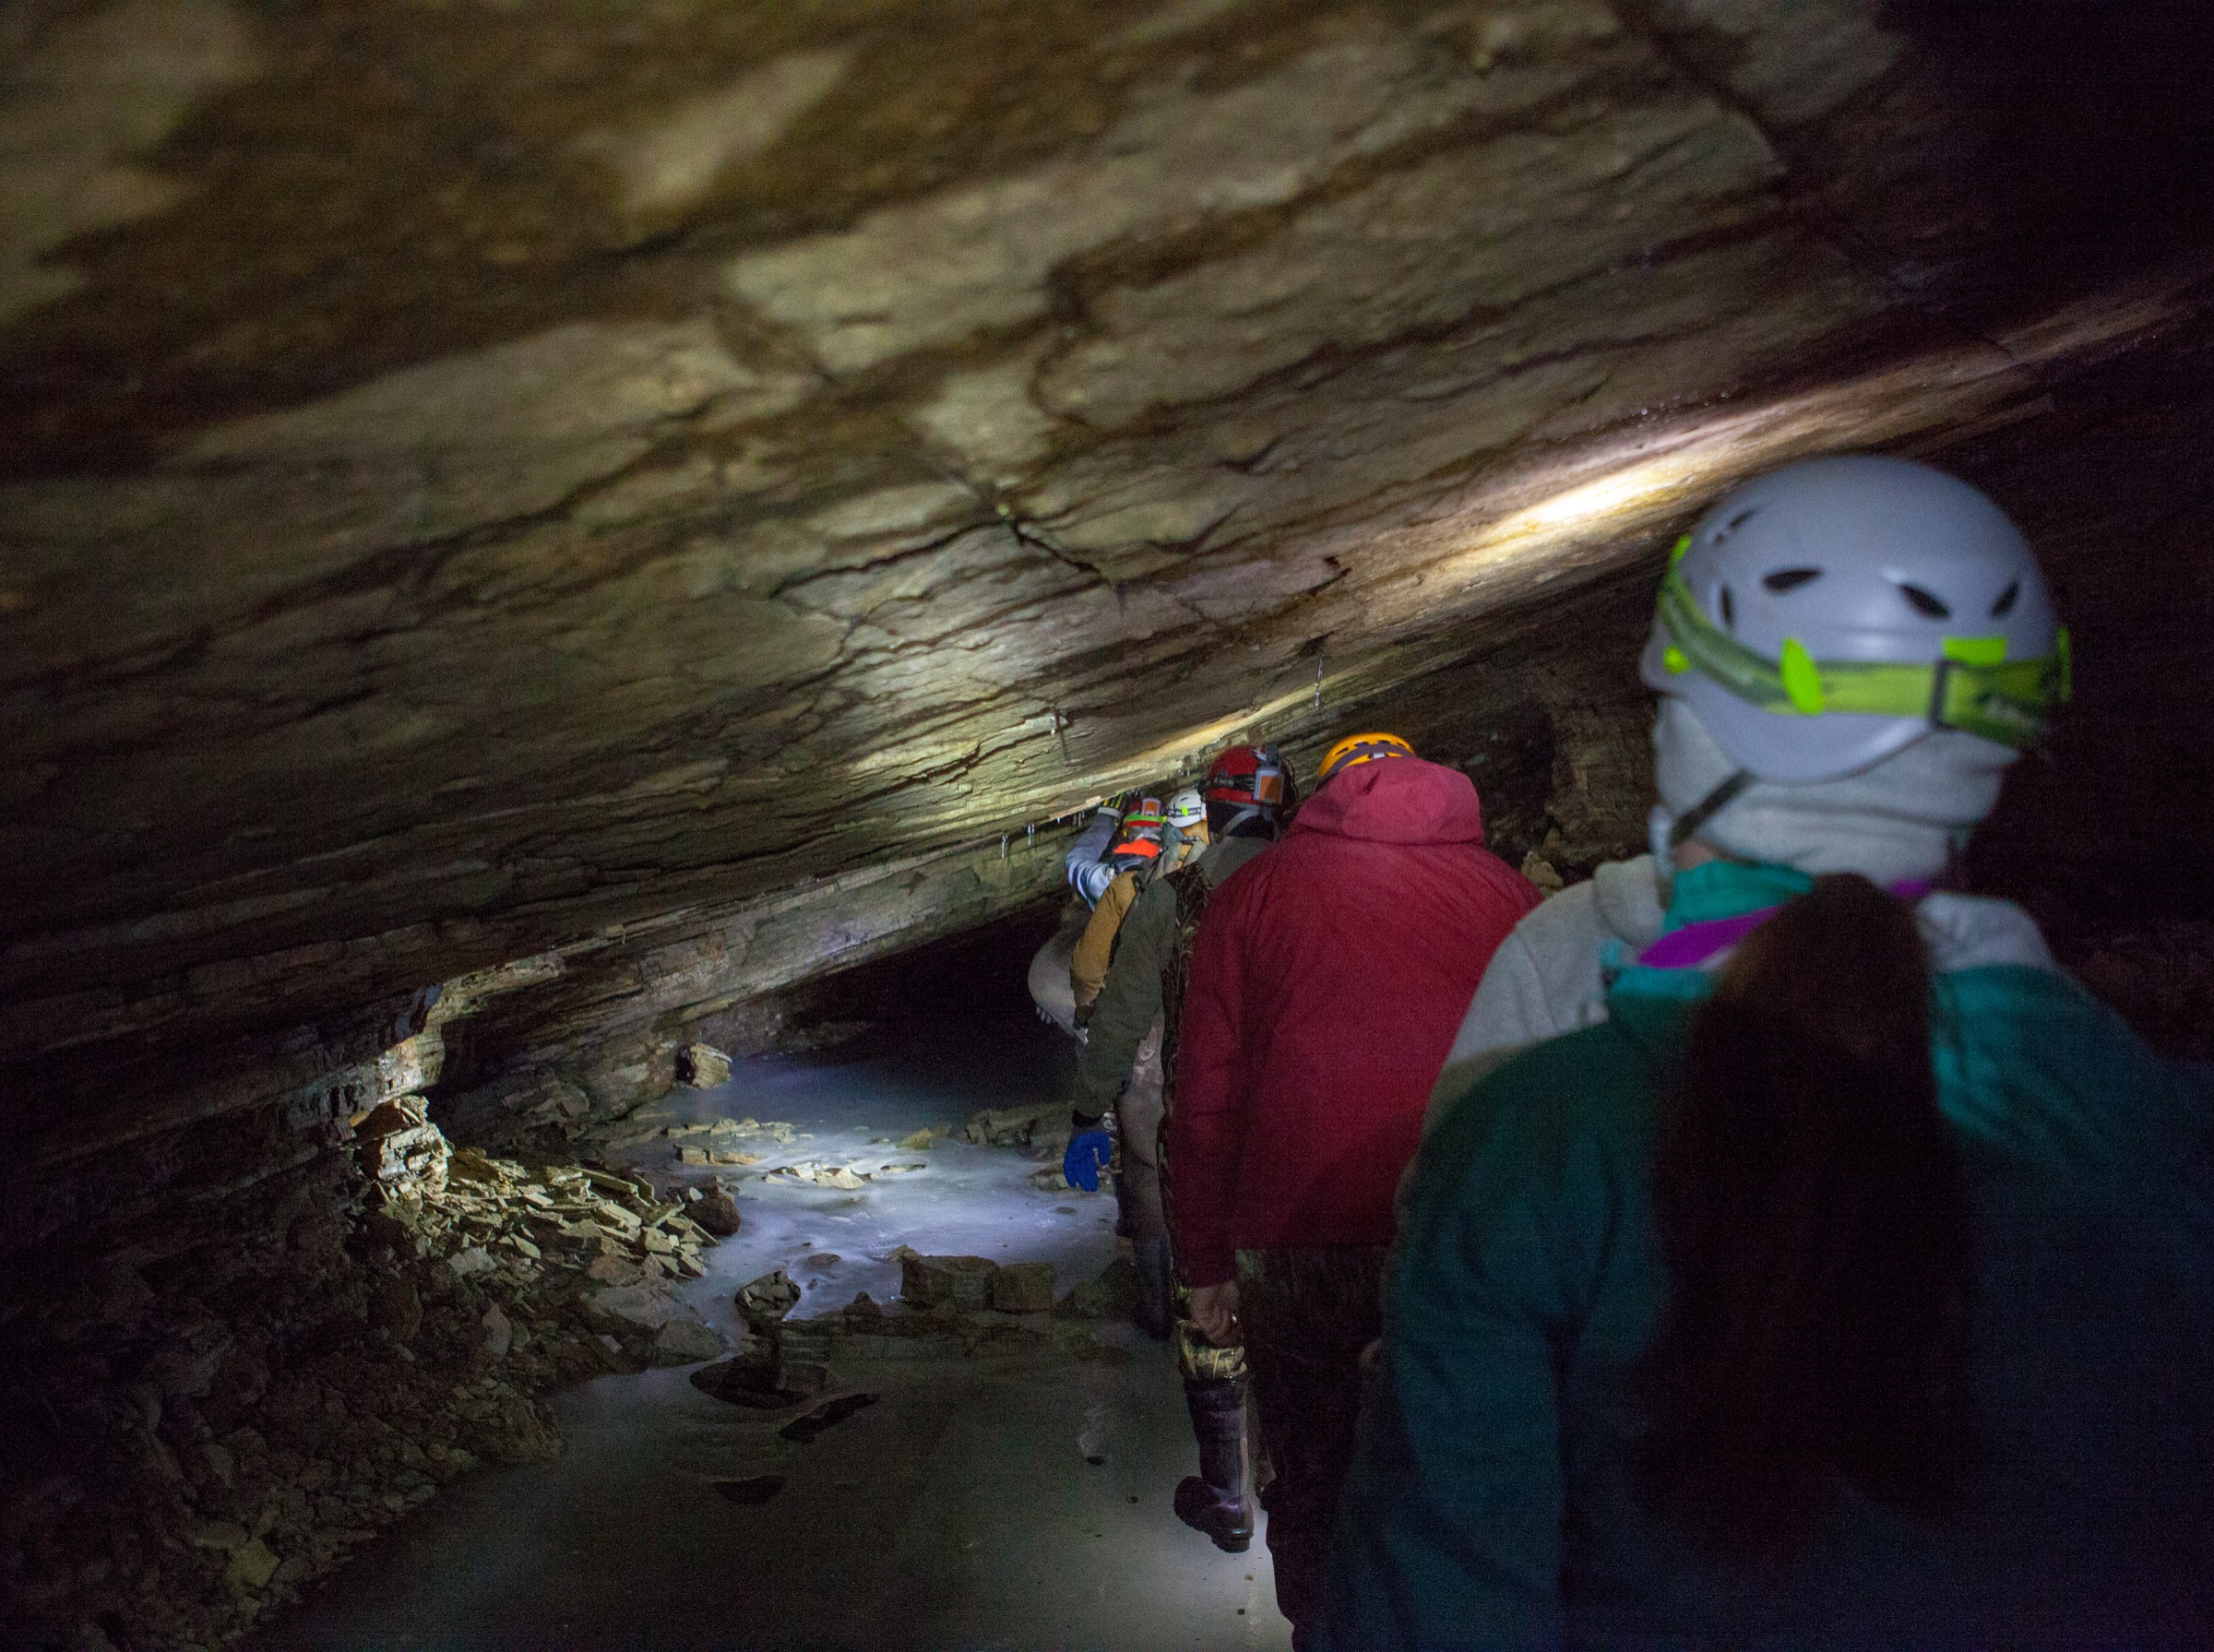 Led by Carl Herzog, a wildlife biologist for the New York State Department of Environmental Conservation, a team of mostly agency employees files into the cave, ducking to avoid the low ceiling. Photograph by Geoffrey Giller